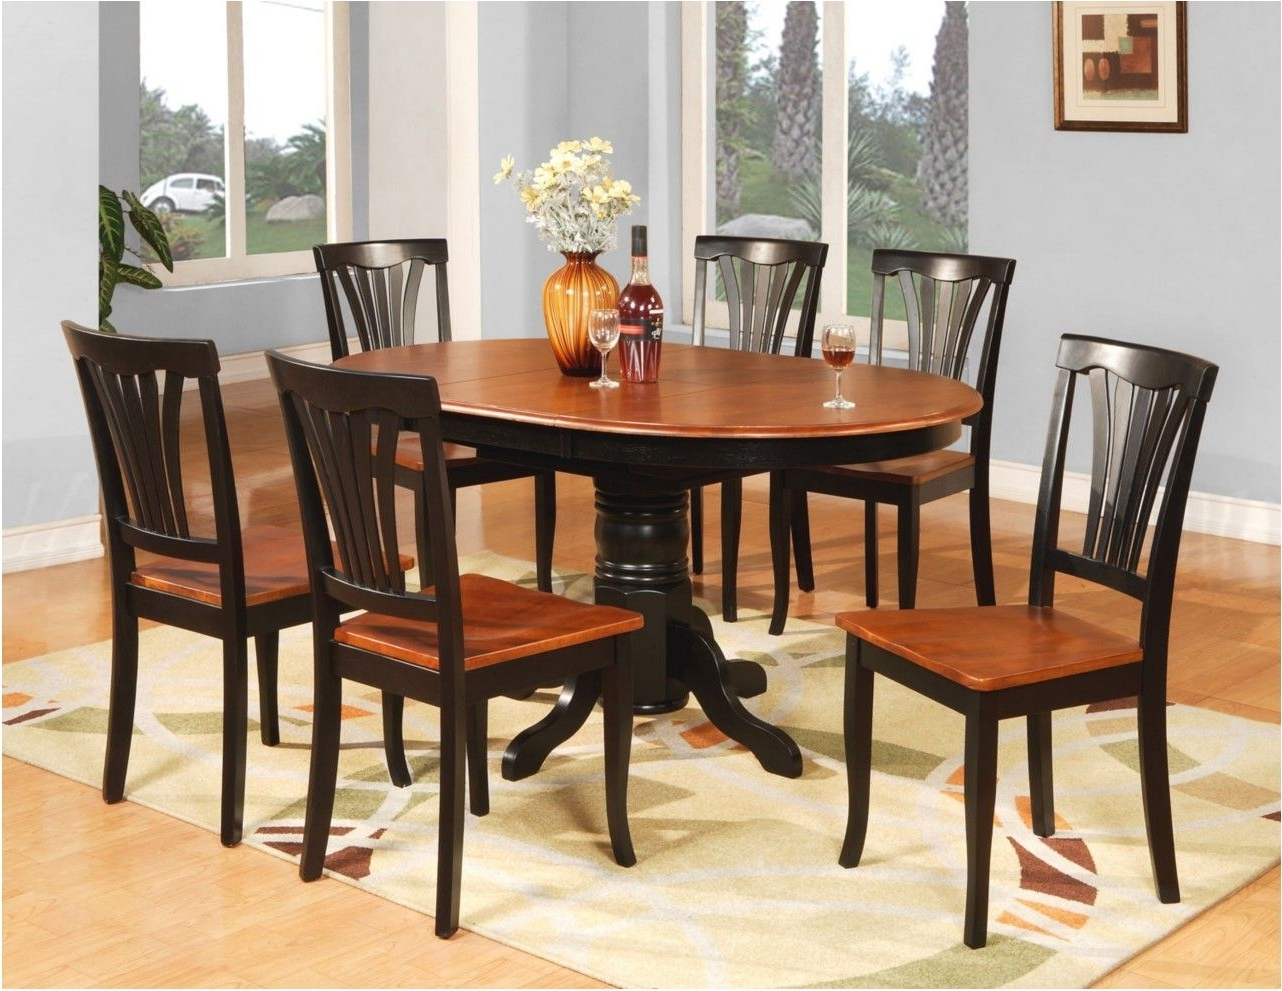 Magnificent Round Kitchen Table Sets For 6 Medium Size Of Person Inside 2017 6 Person Round Dining Tables (View 24 of 25)